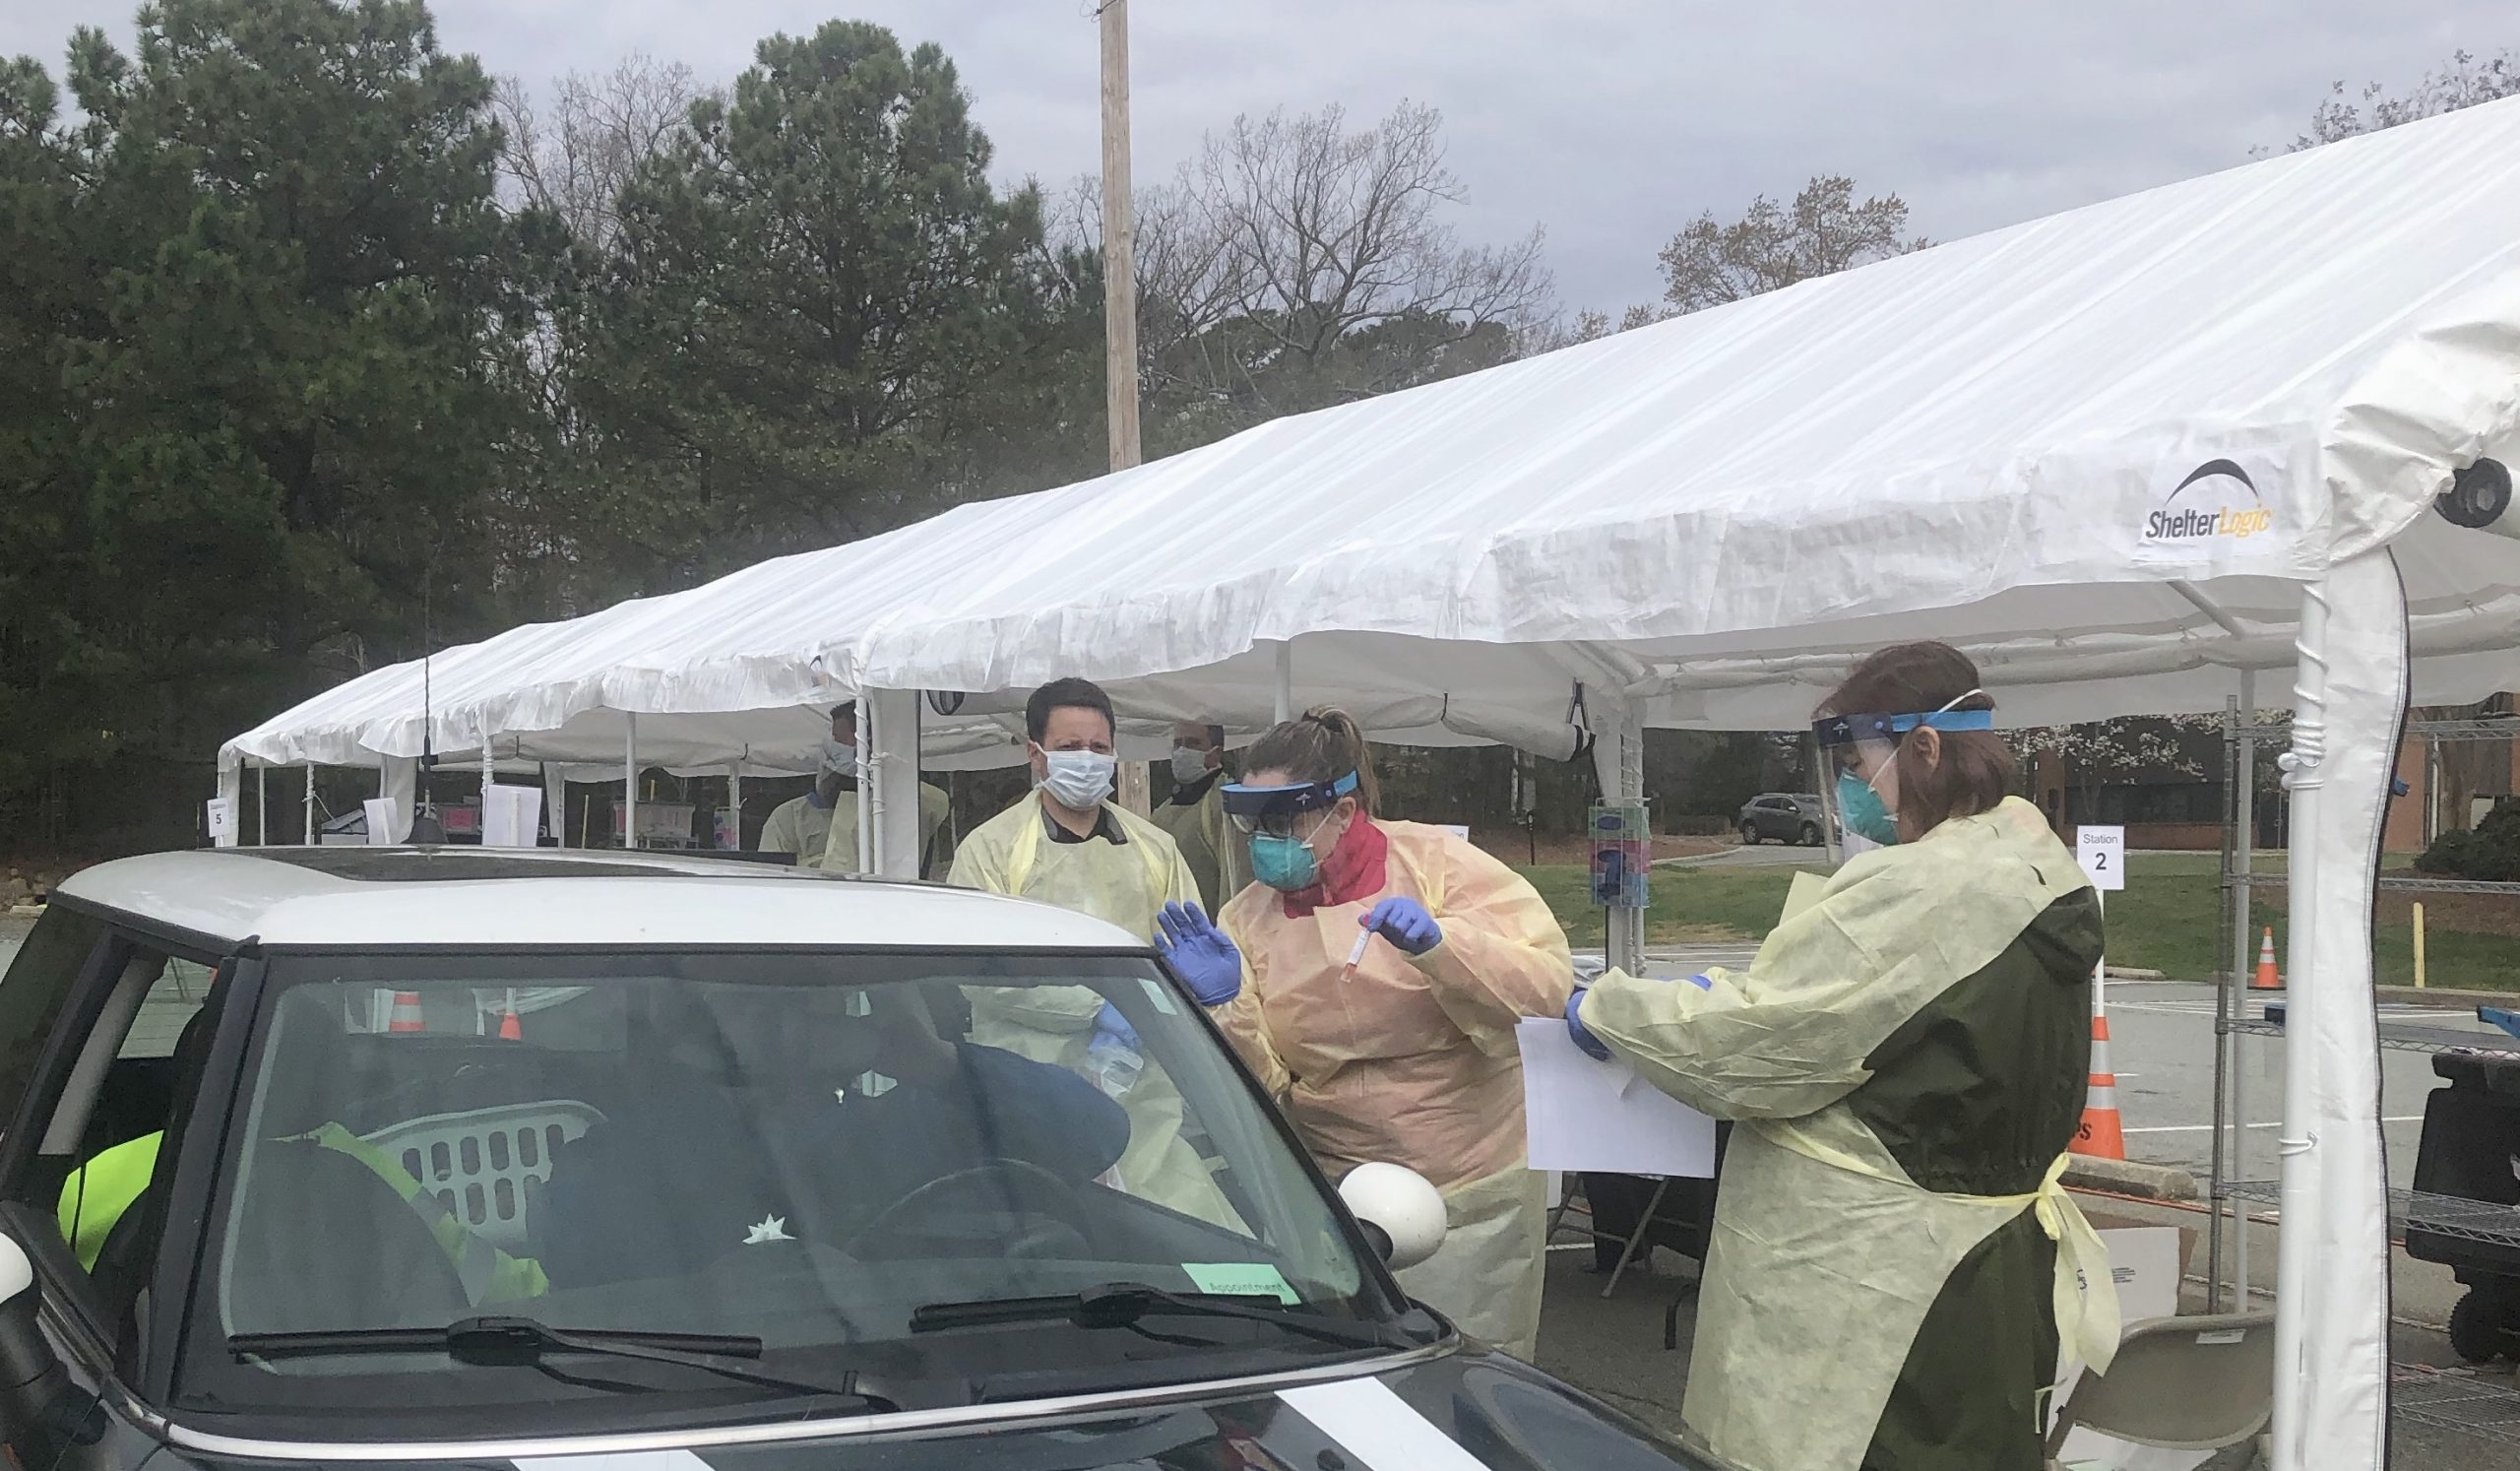 staff in protective equipment take information from person in car